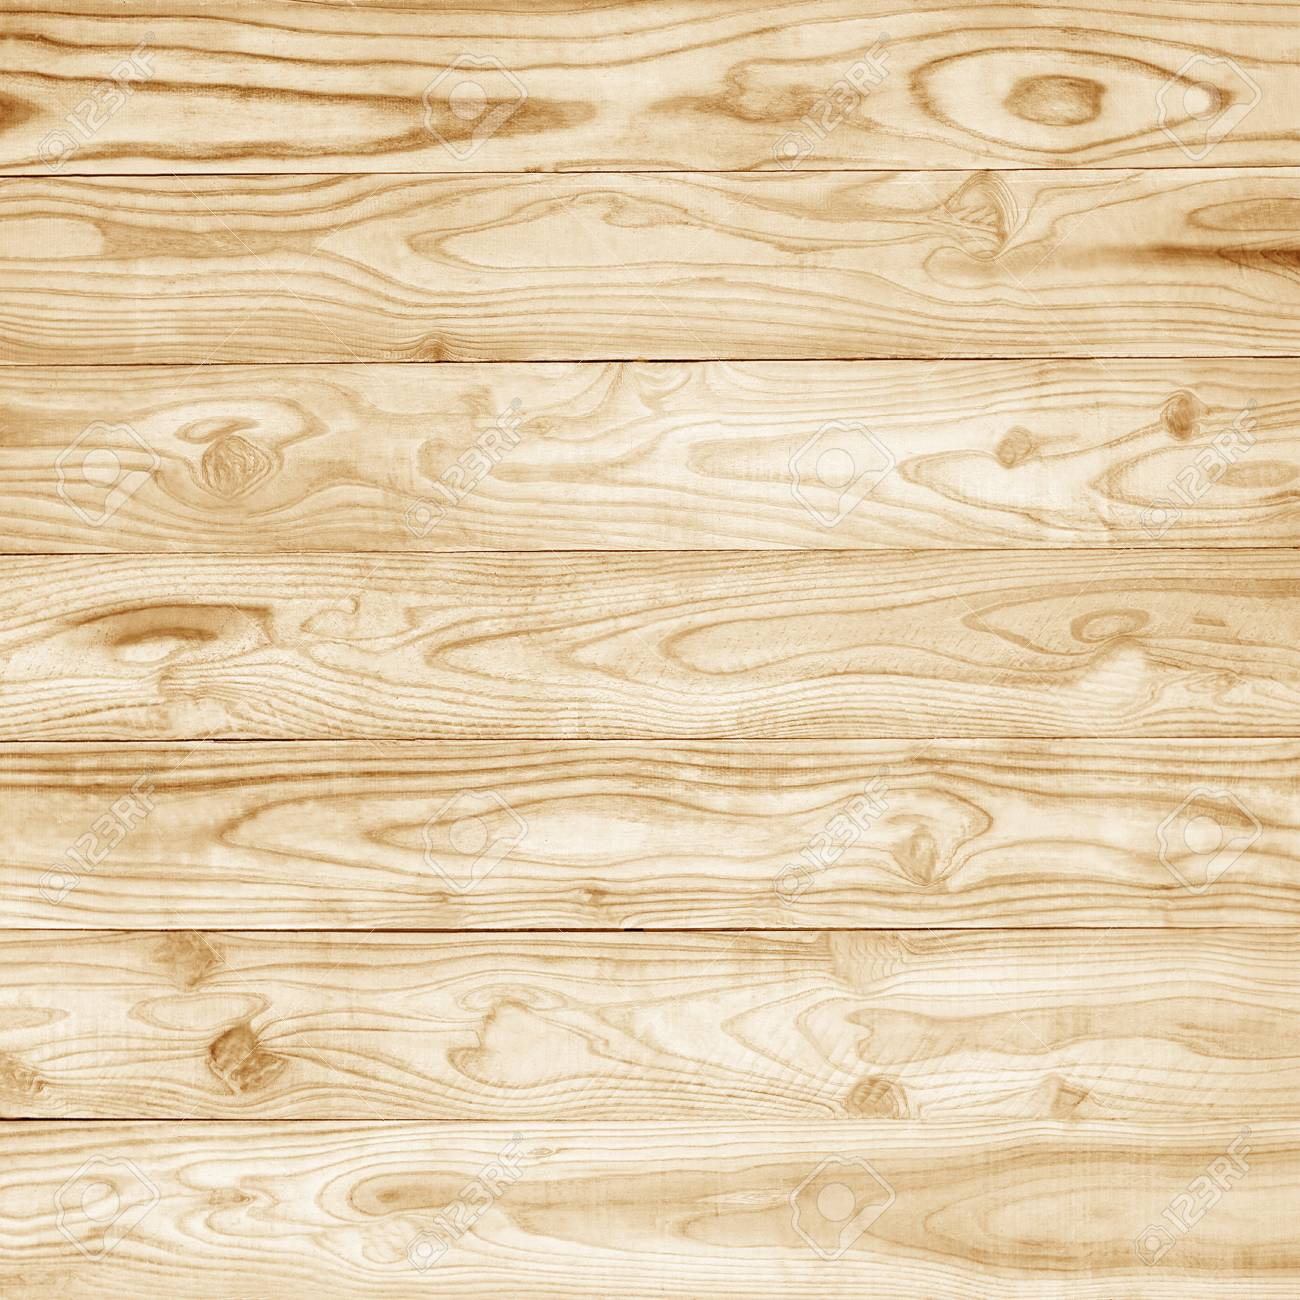 Wooden Wall Background Or Texture Wood Texture With Natural Stock